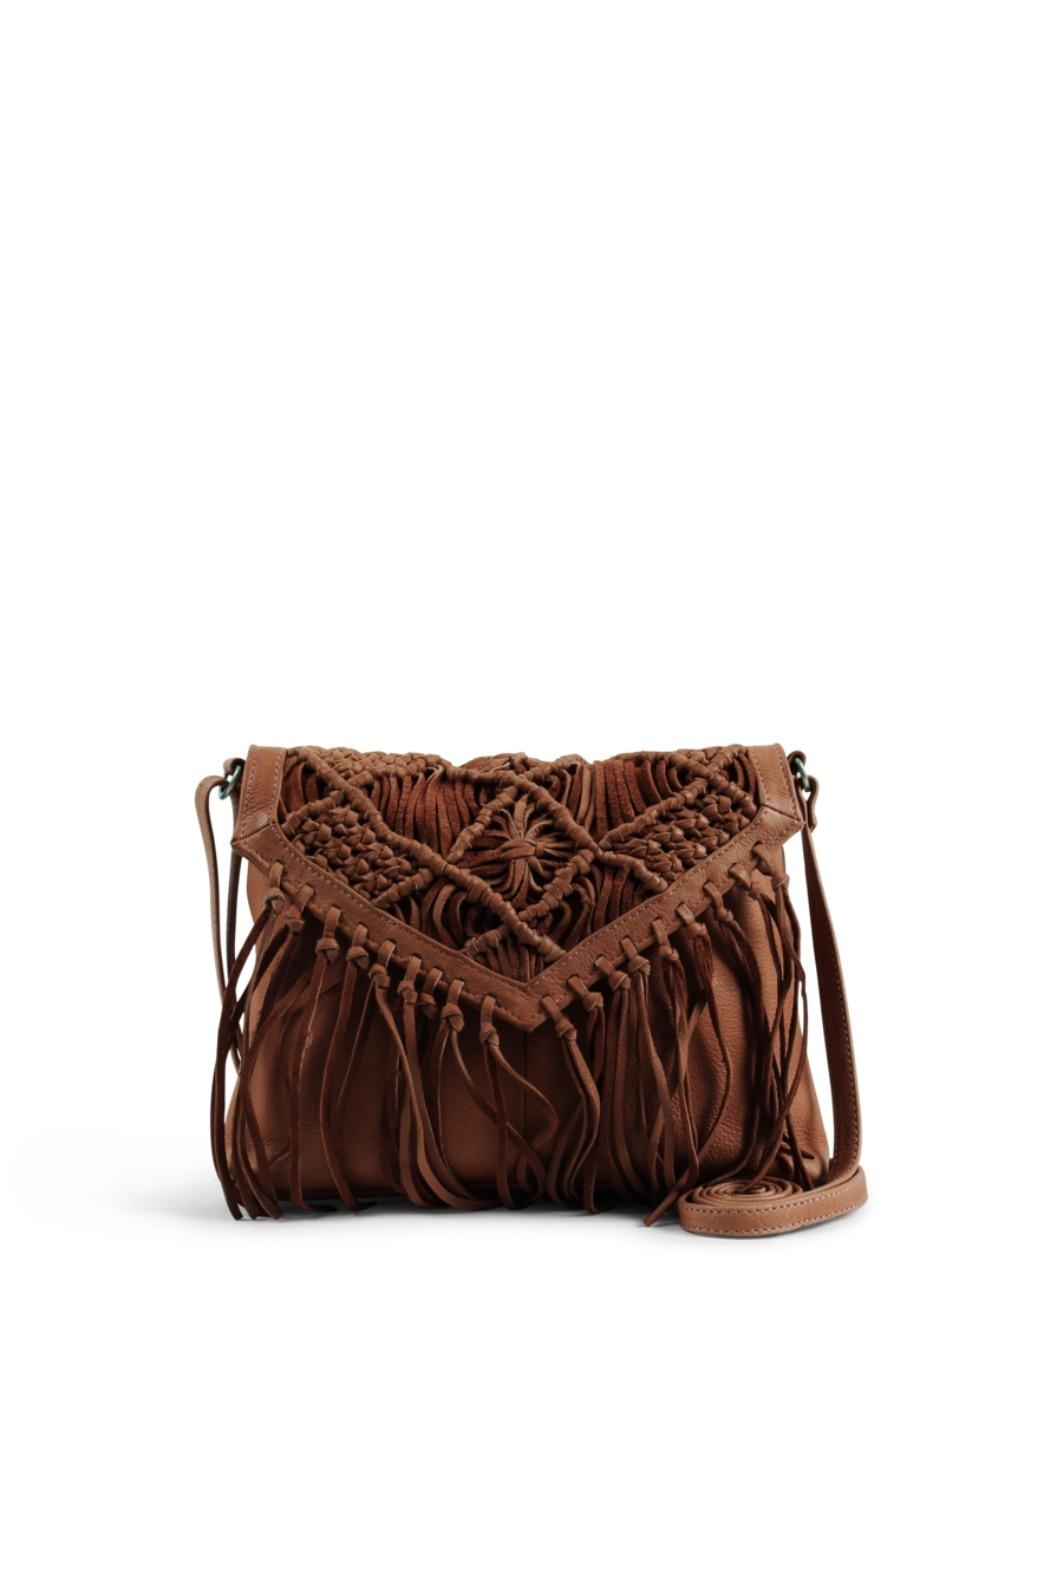 Day & Mood Tassel Leather Crossbody Bag - Front Cropped Image